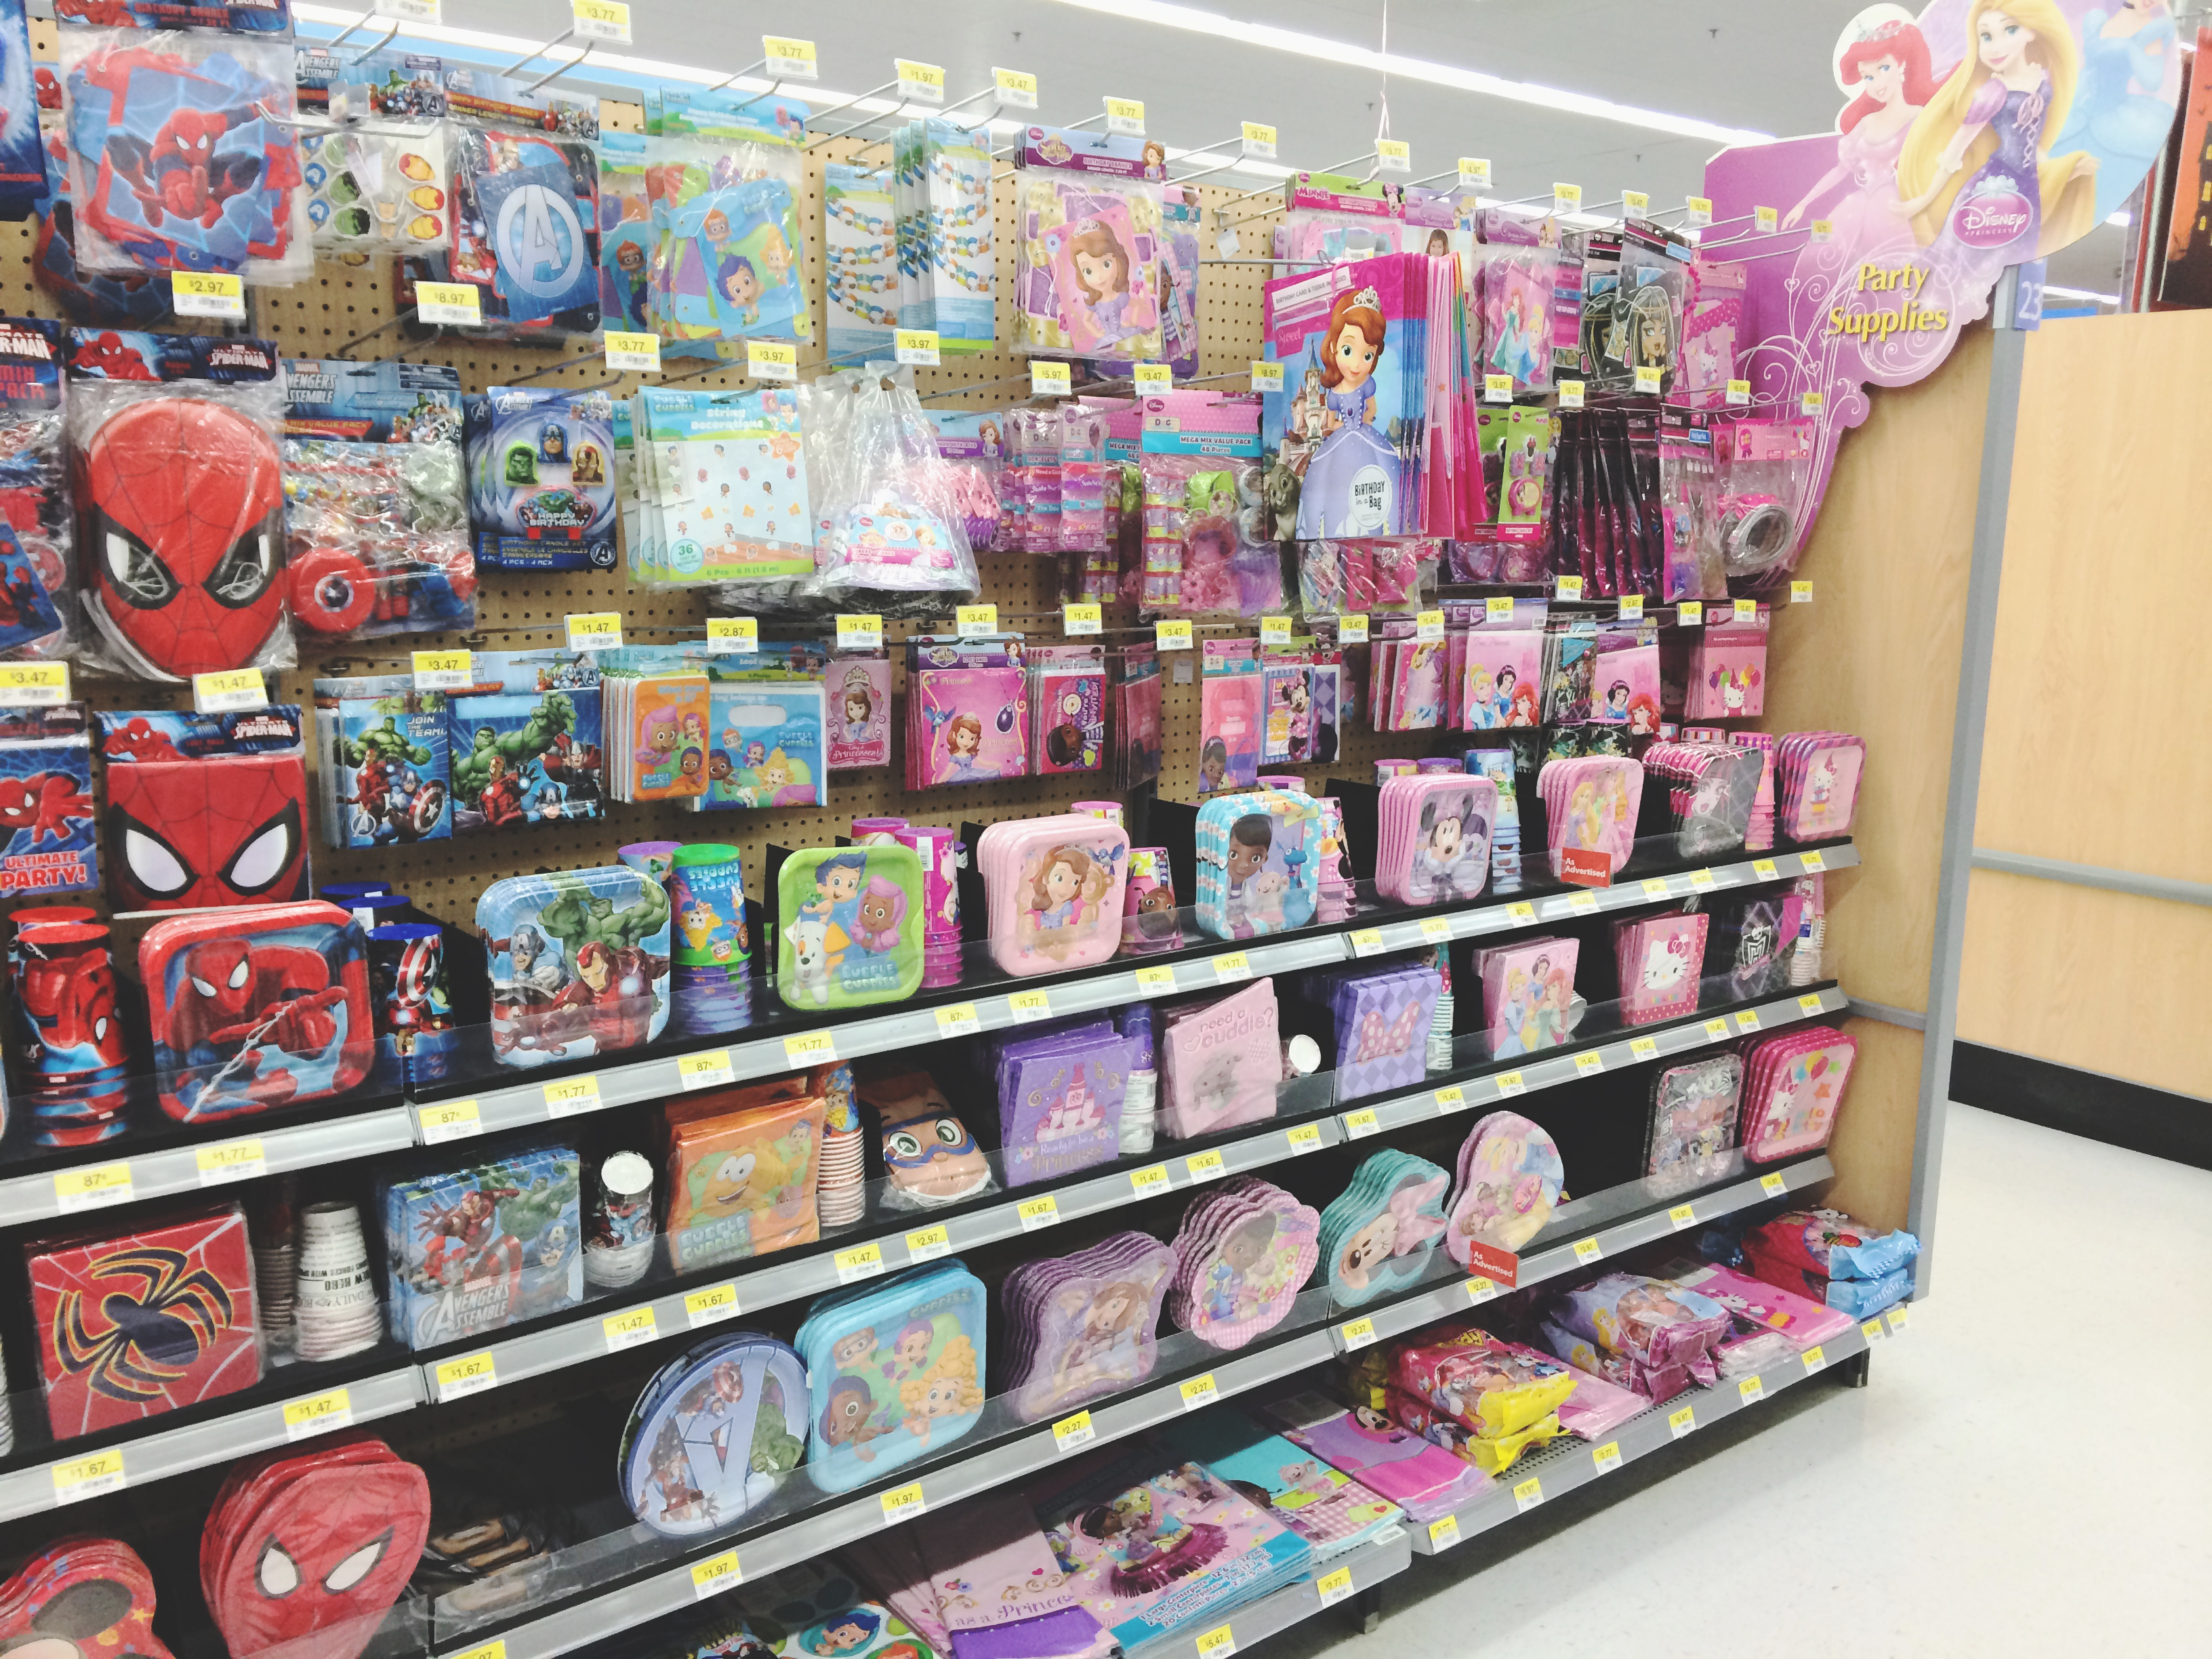 Disney Junior party supplies #JuniorCelebrates #CollectiveBias #shop